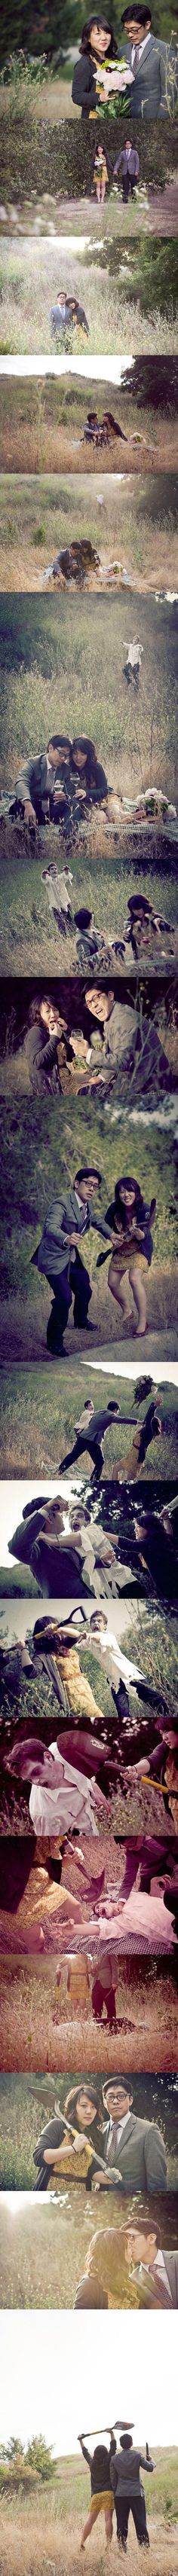 The ultimate engagement photo shoot.